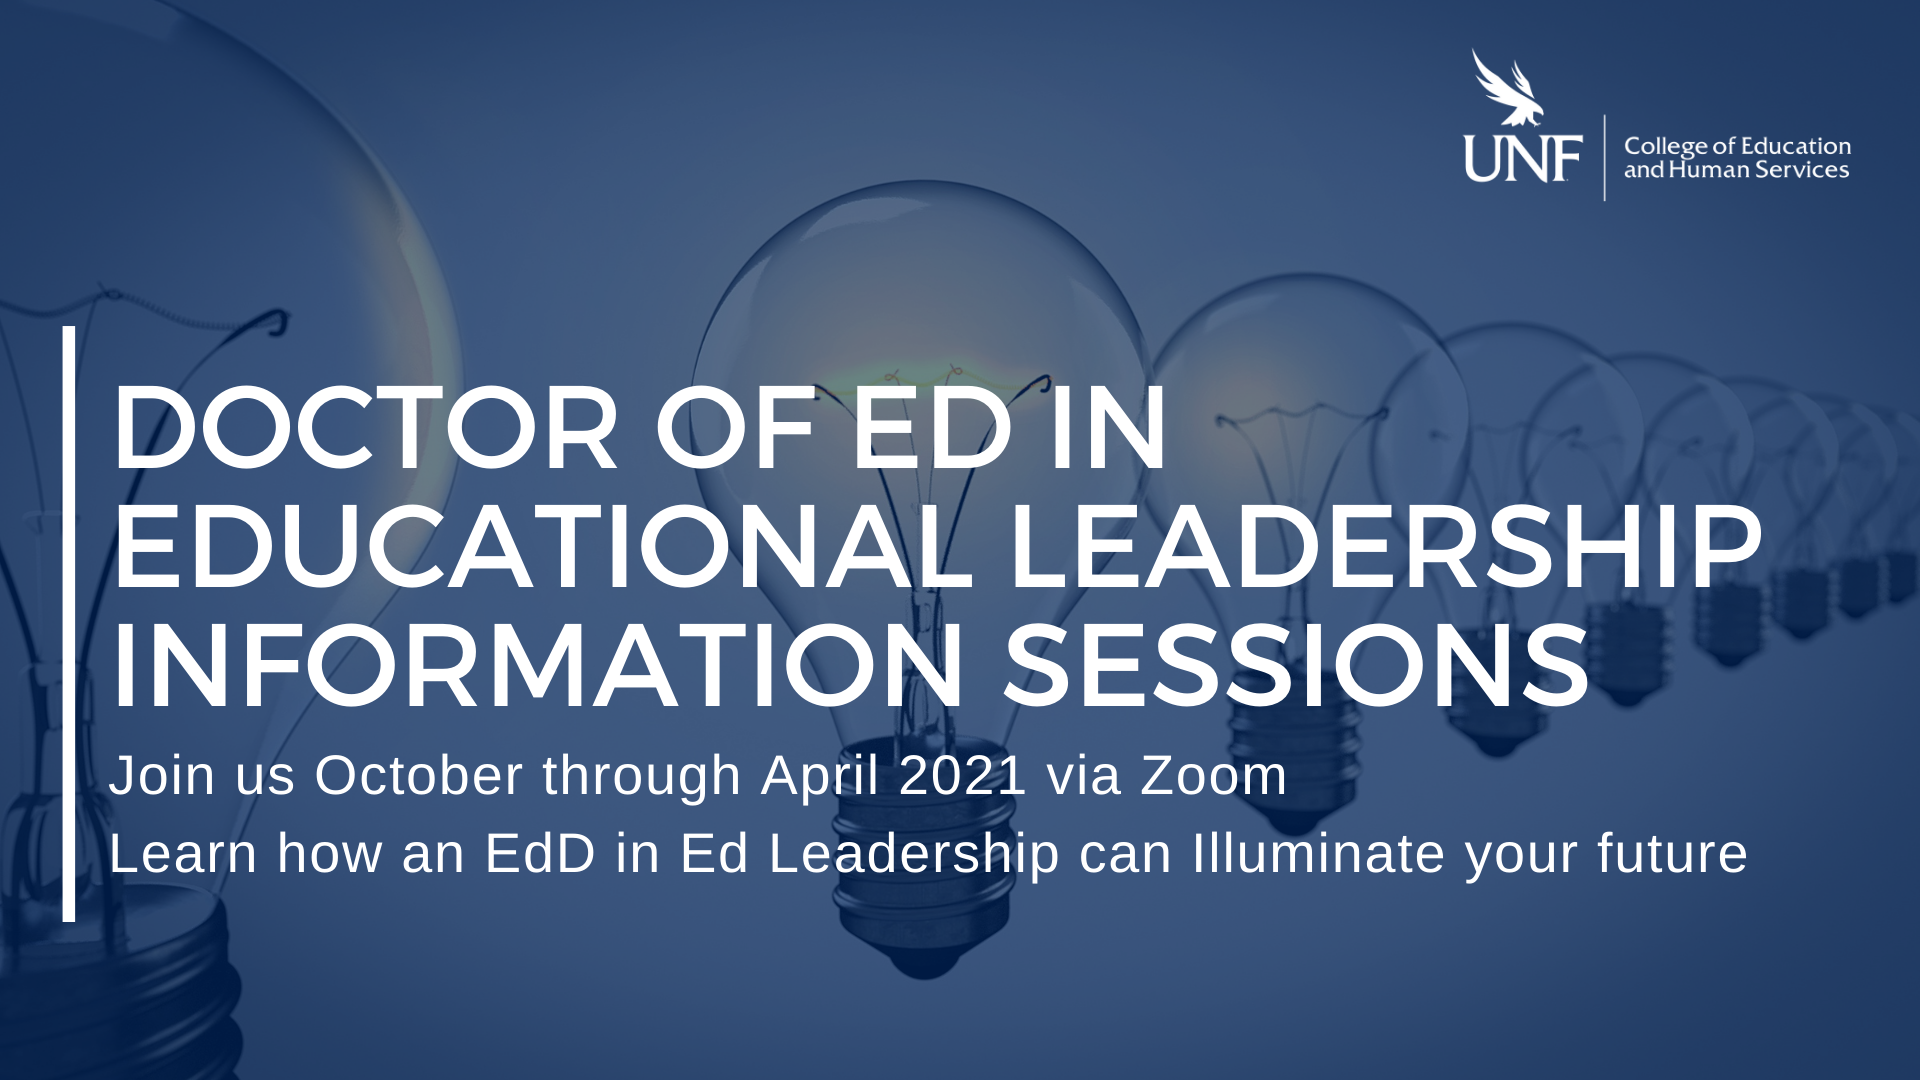 EdD info Sessions, Join us Oct 2020 through April 2021 via Zoom